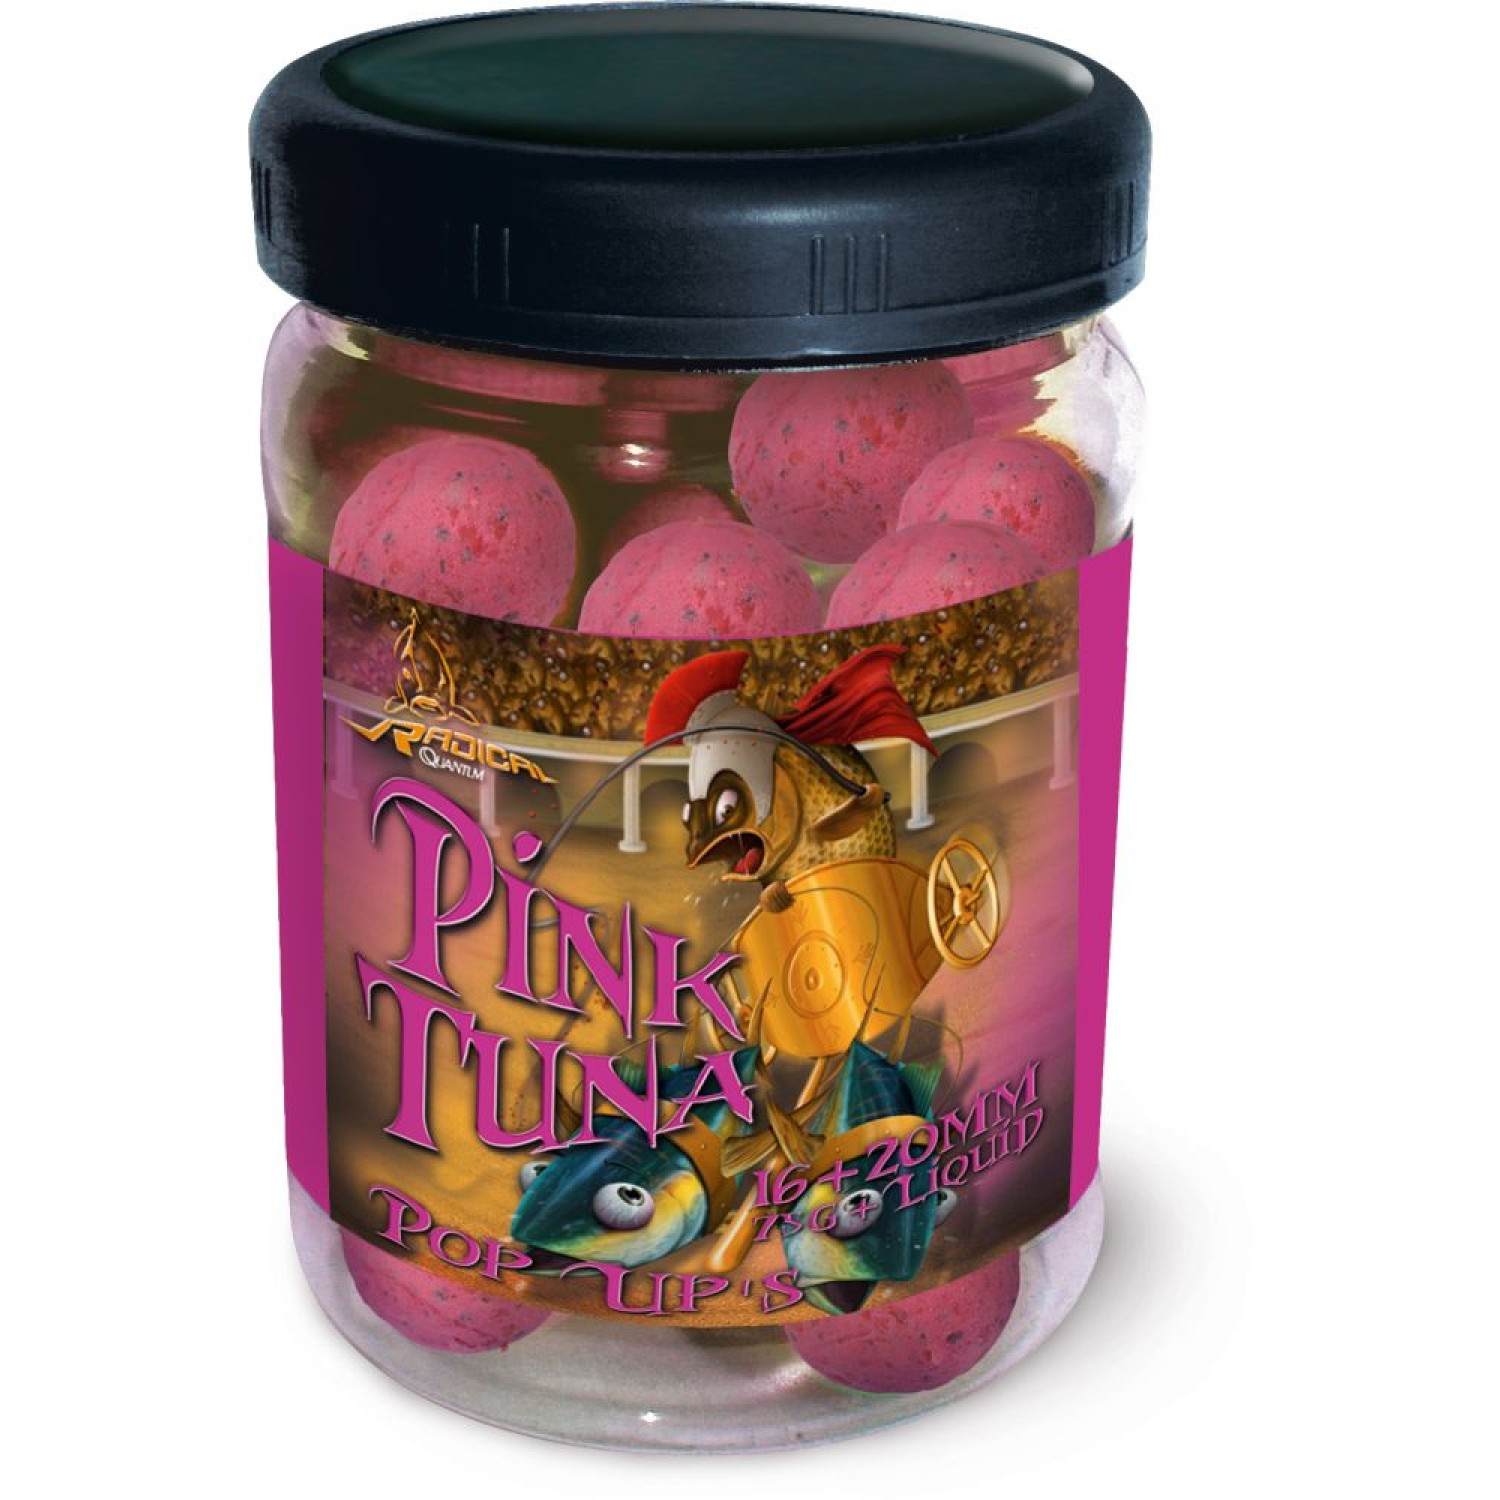 QUANTUM Pink Tuna Pop Up 75g, 16 & 20mm